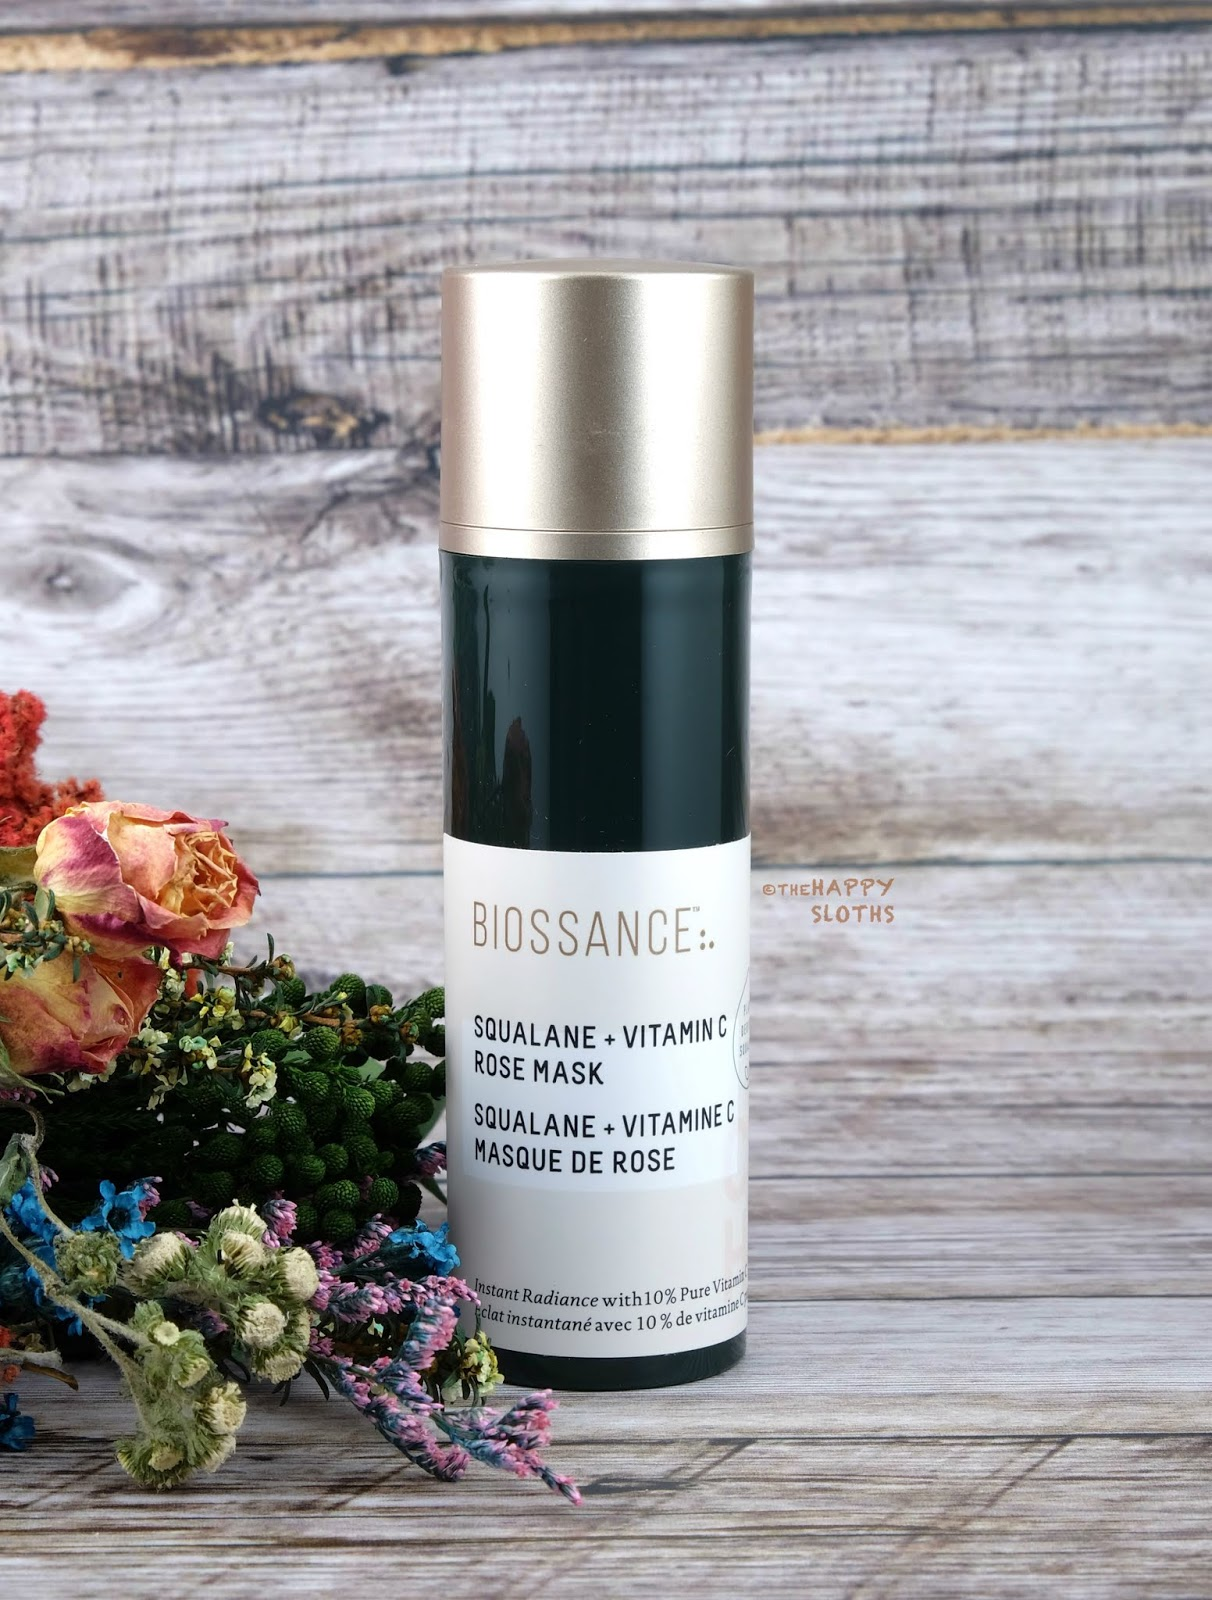 Biossance | Squalane + Vitamin C Rose Mask: Review